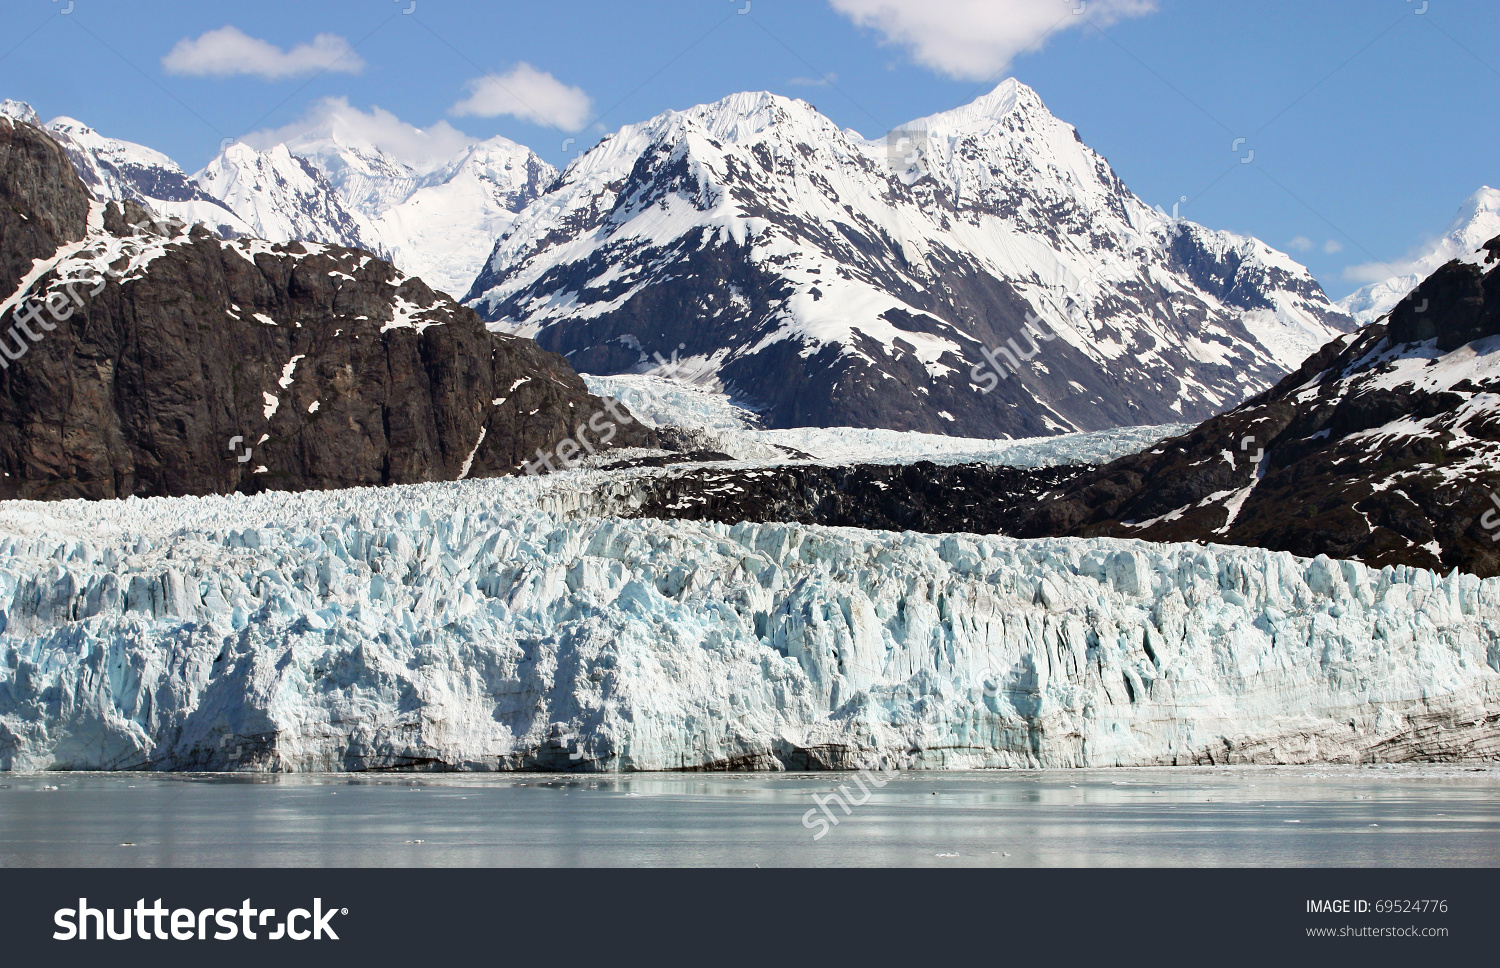 Scenery Of Glacier Bay In Alaska Stock Photo 69524776 : Shutterstock.